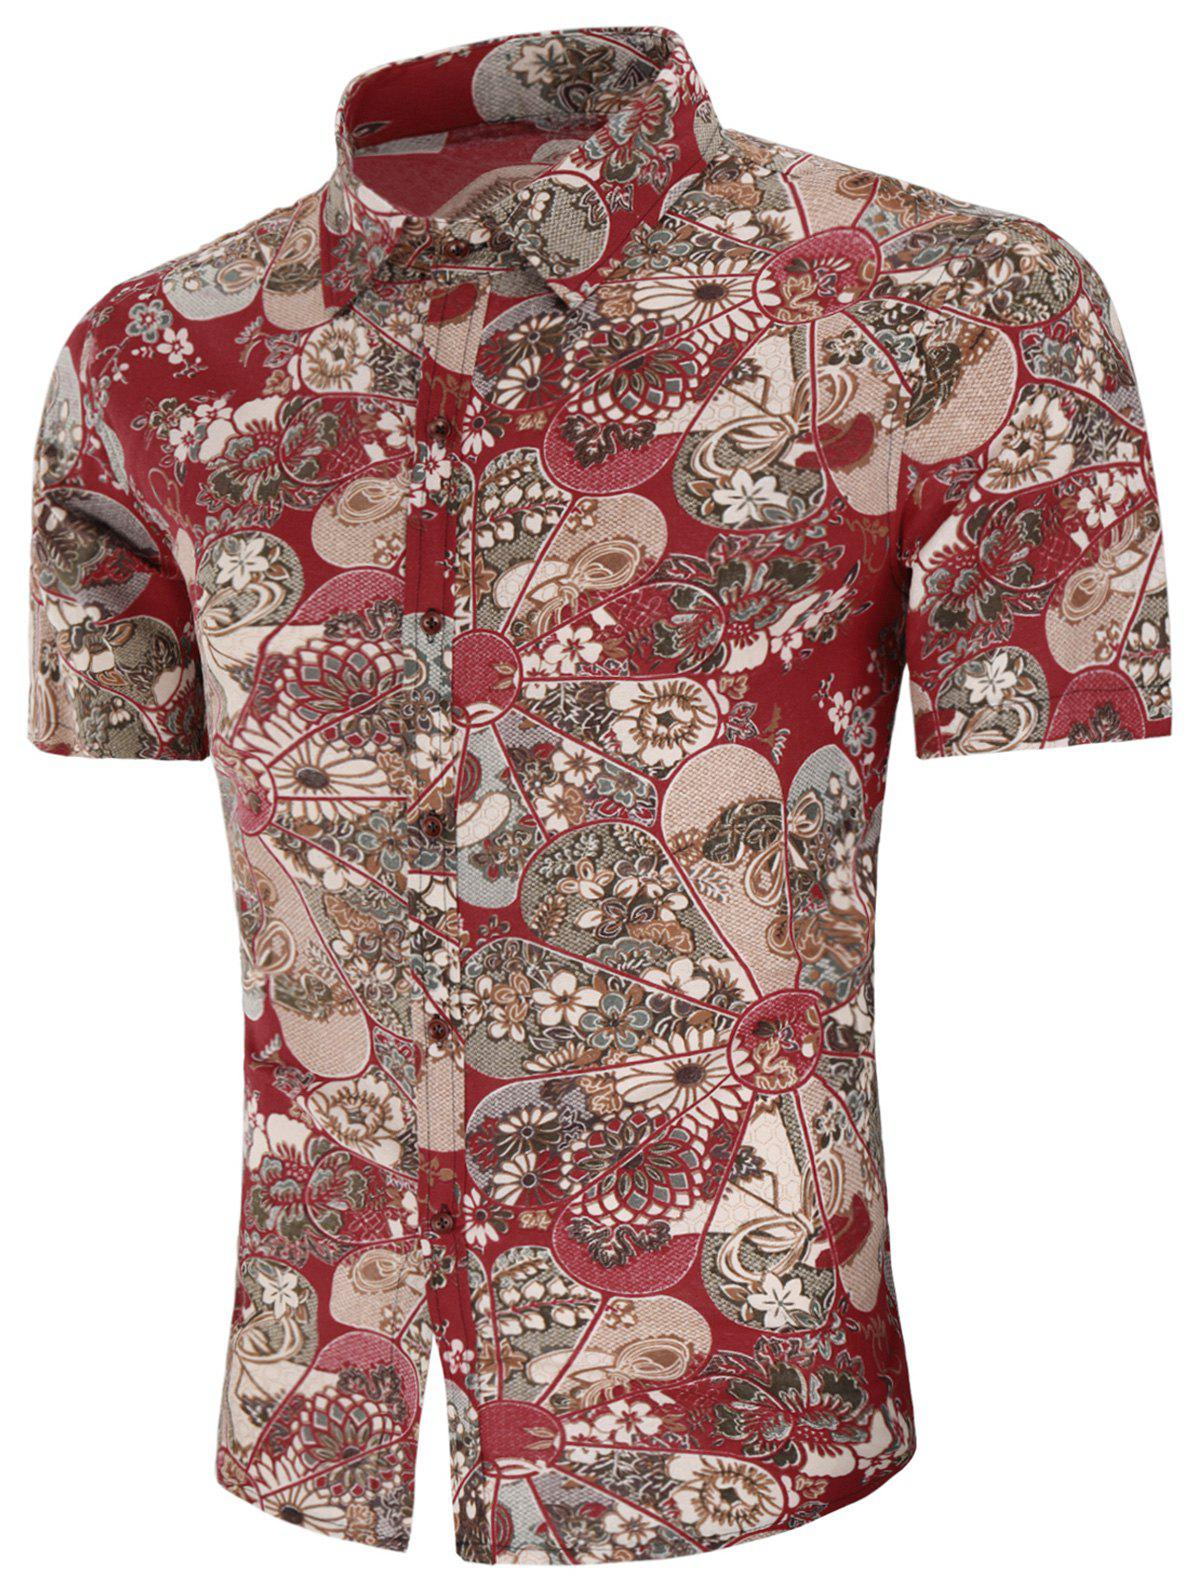 All Over Floral Print Button Up Shirt men all over florals shirt